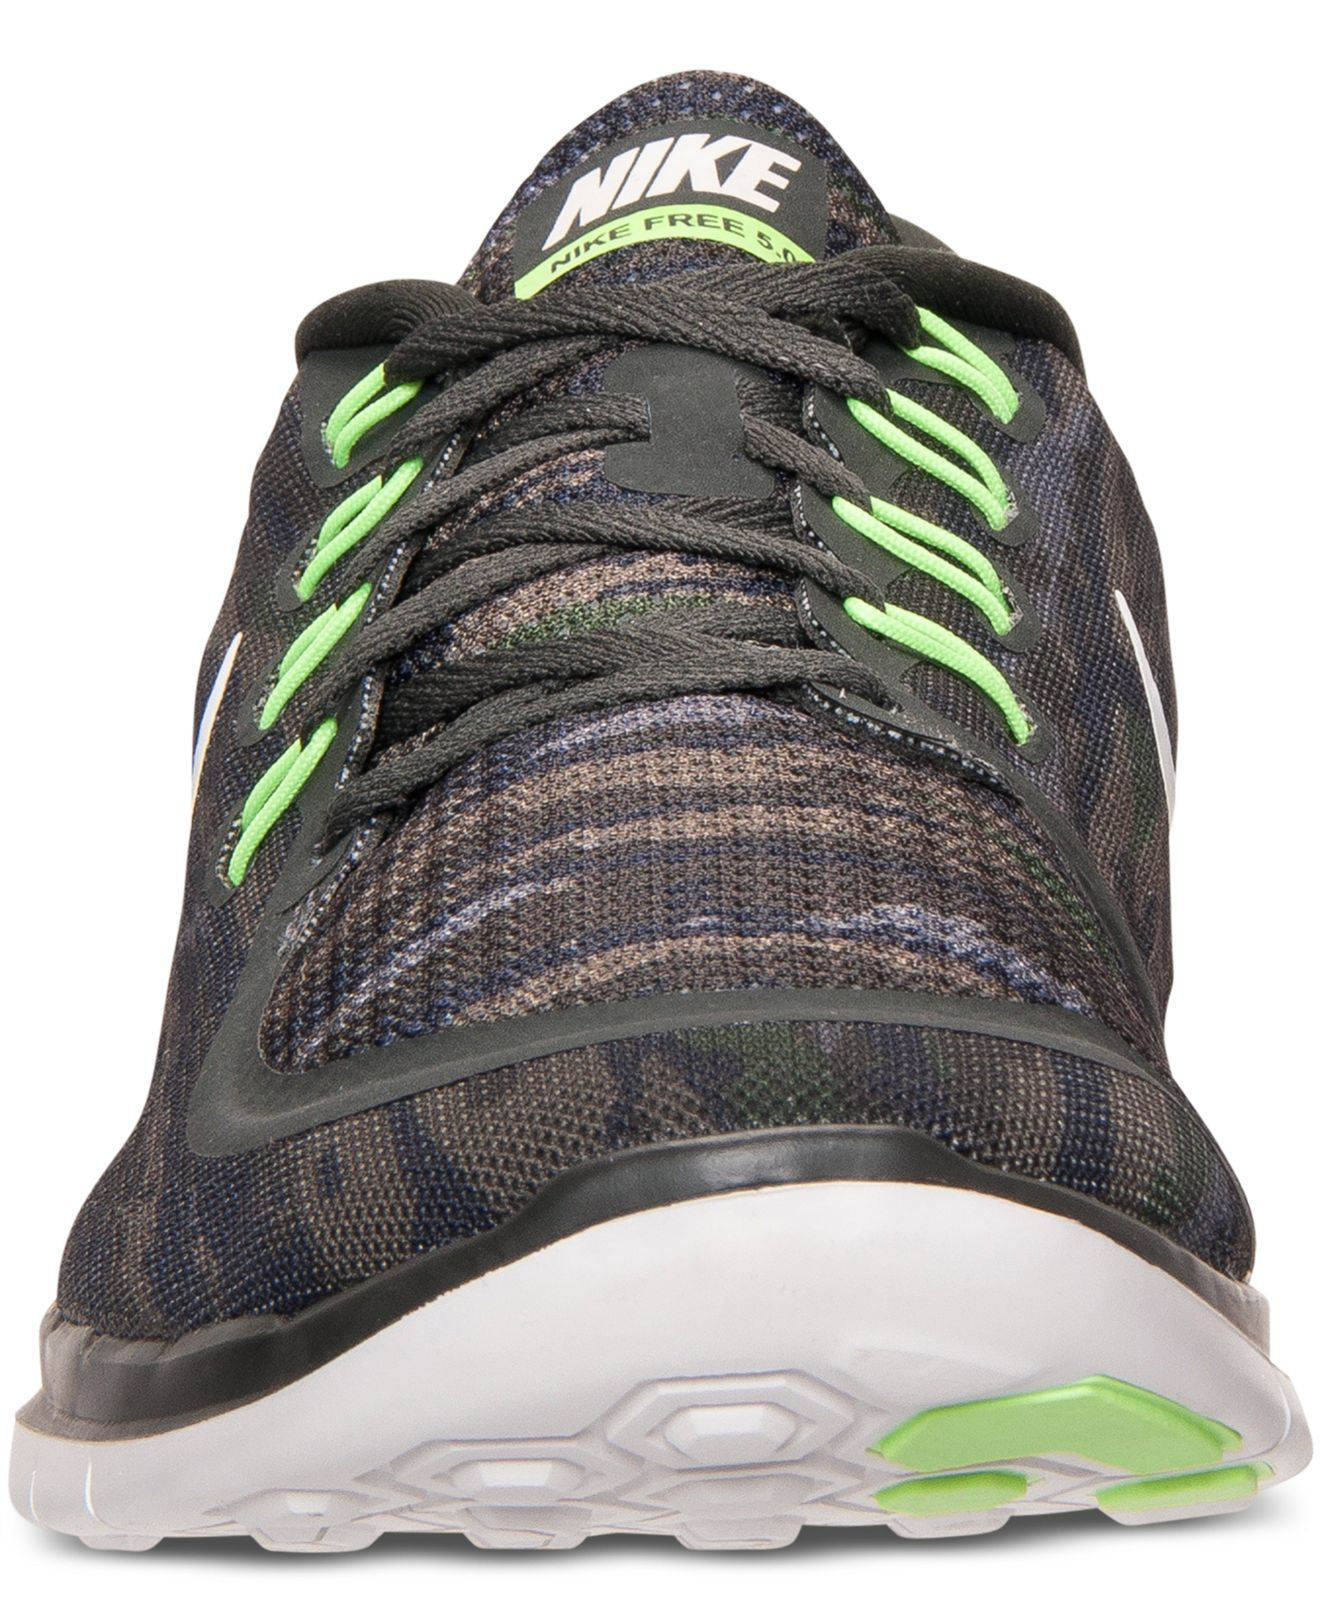 on sale 6df6e 06cad 5 Sneakers Line Men s Nike Print 0 Running Free Finish Lyst From 60gt1Tnq1w